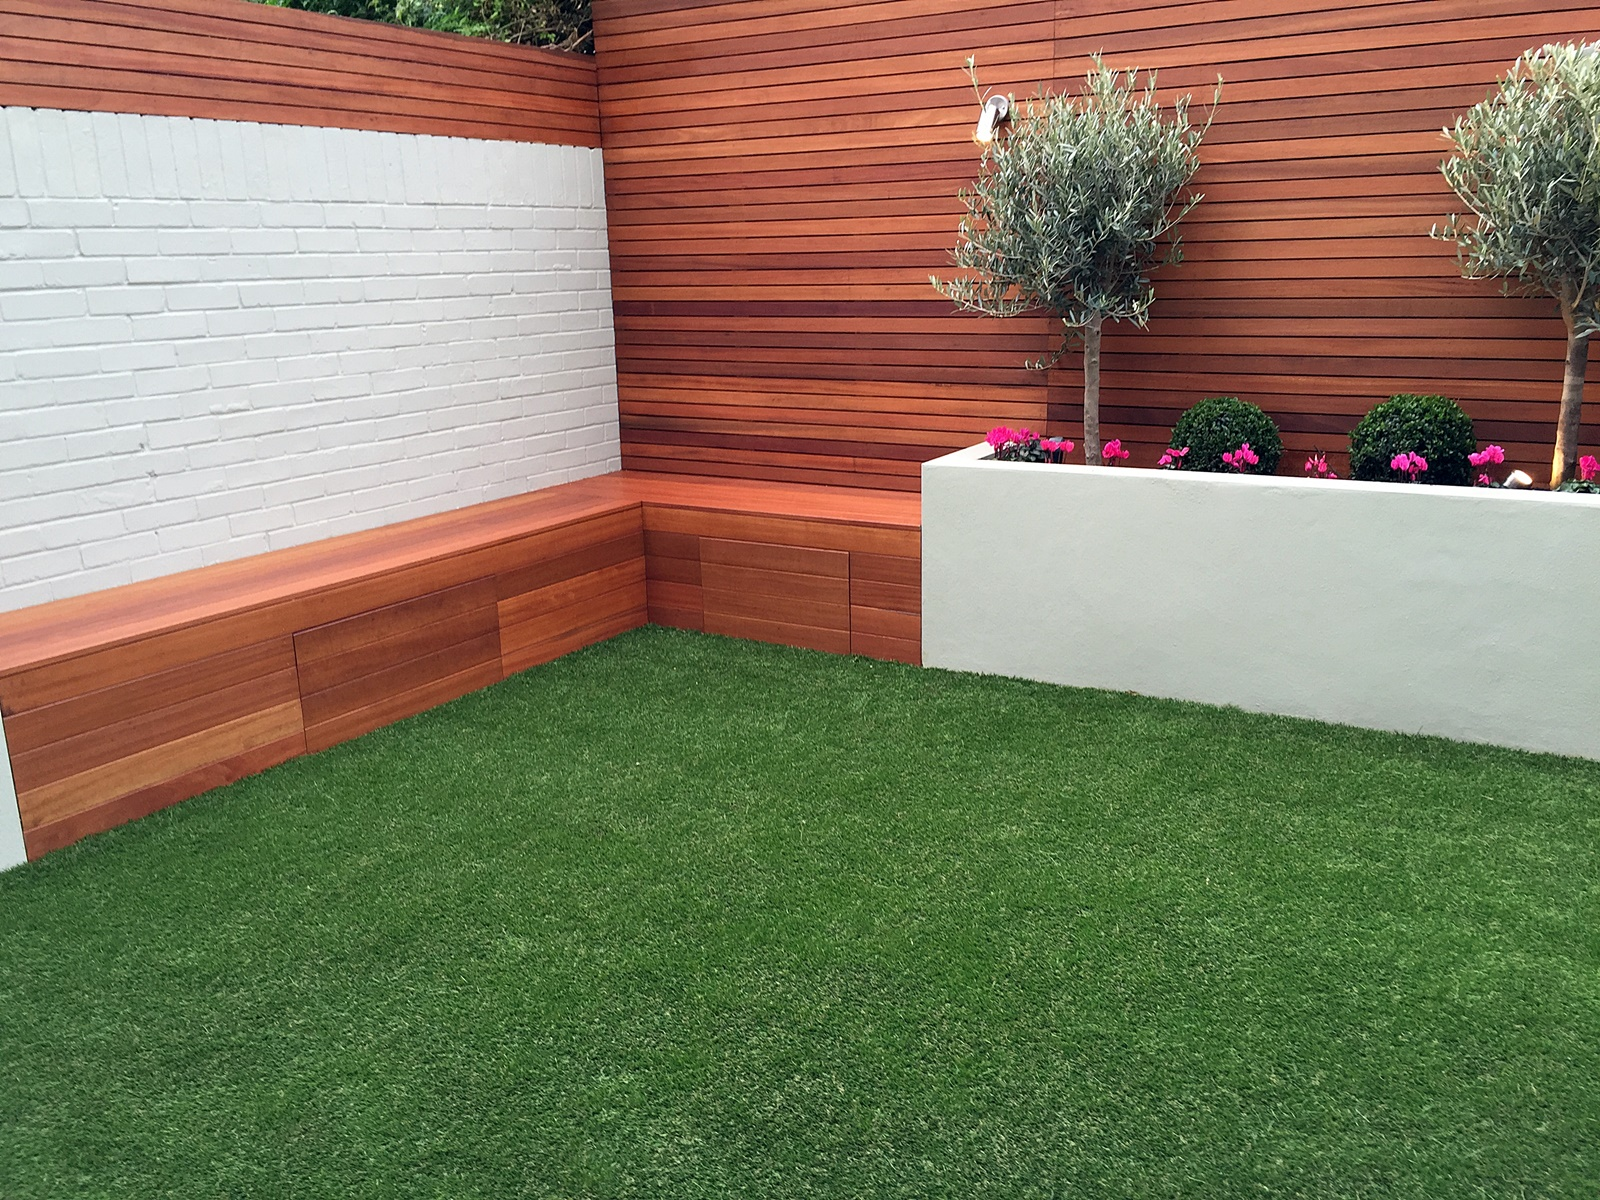 Simple modern court yard garden designer battersea fulham for Contemporary garden design ideas